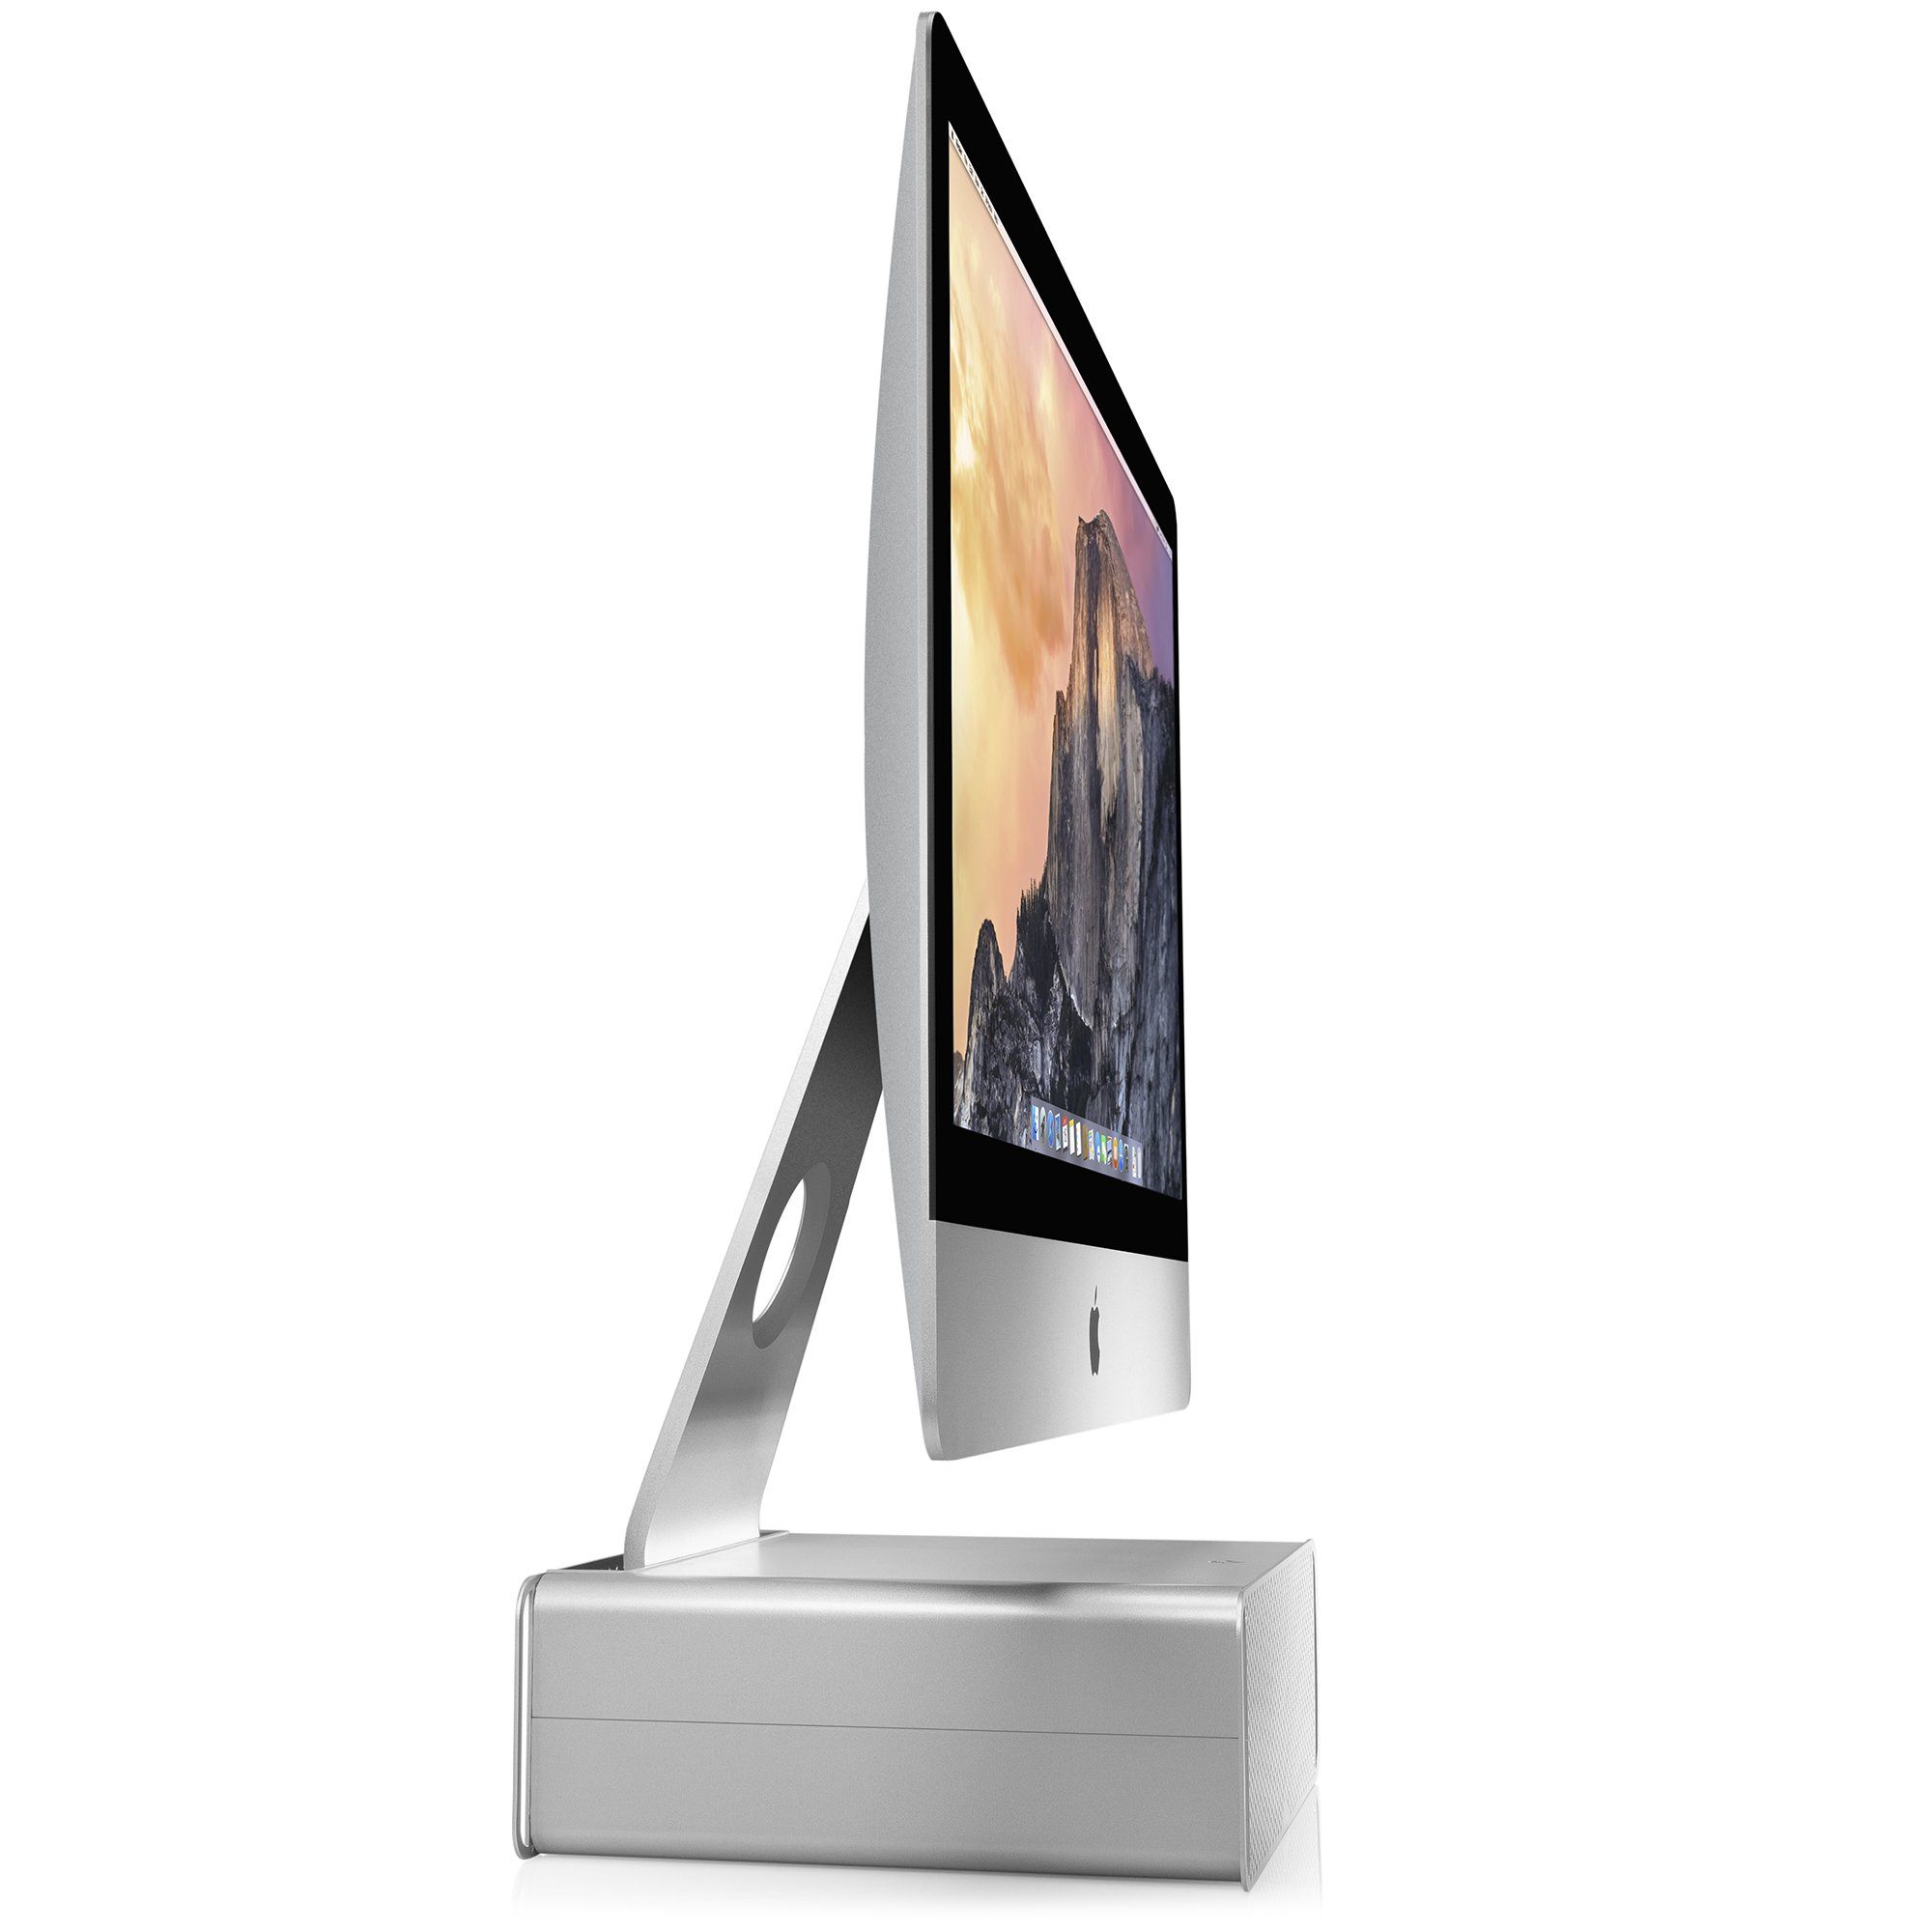 Twelve south hirise for imac height adjustable stand with storage for imac ebay - Computer desk for imac inch ...